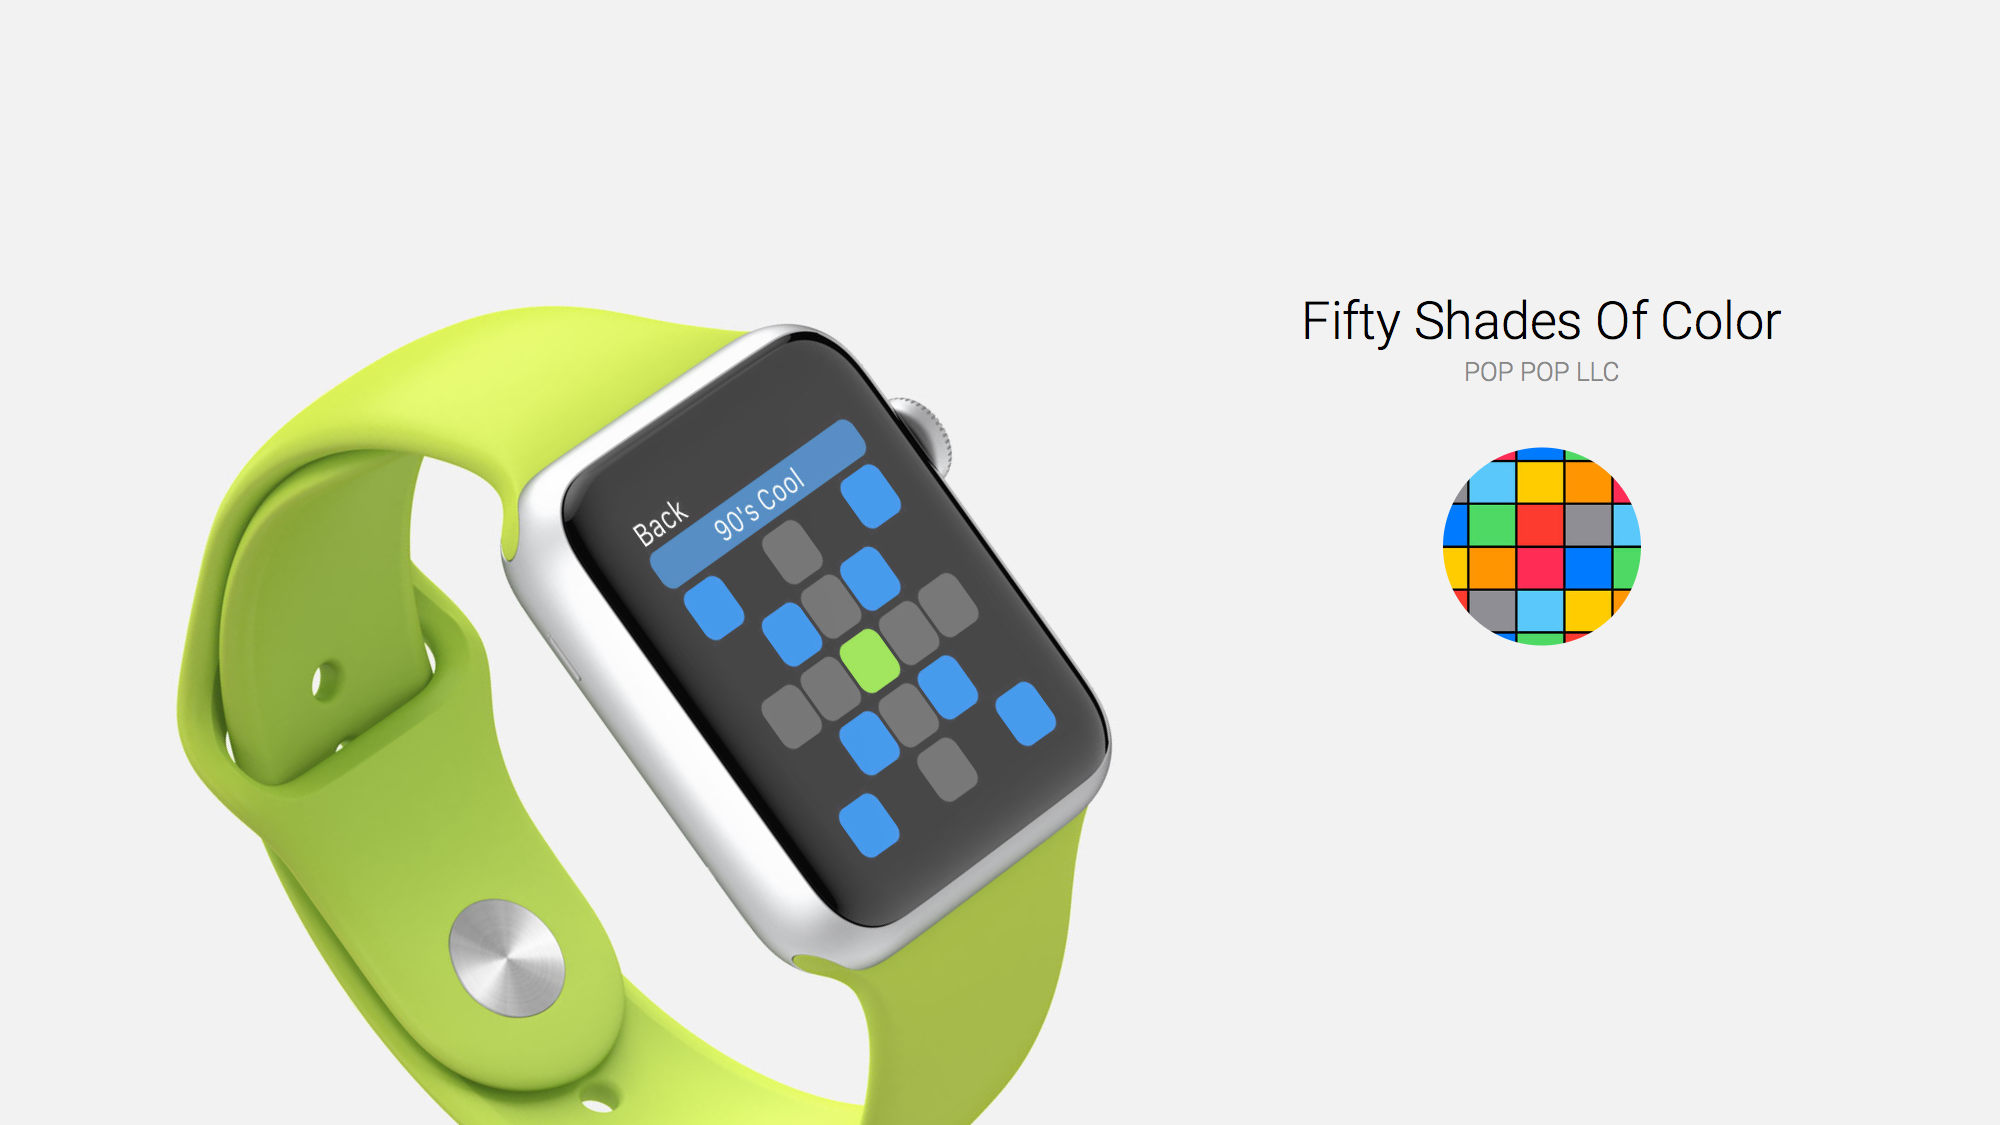 Fifty Shades of Color is a Colorful Puzzle